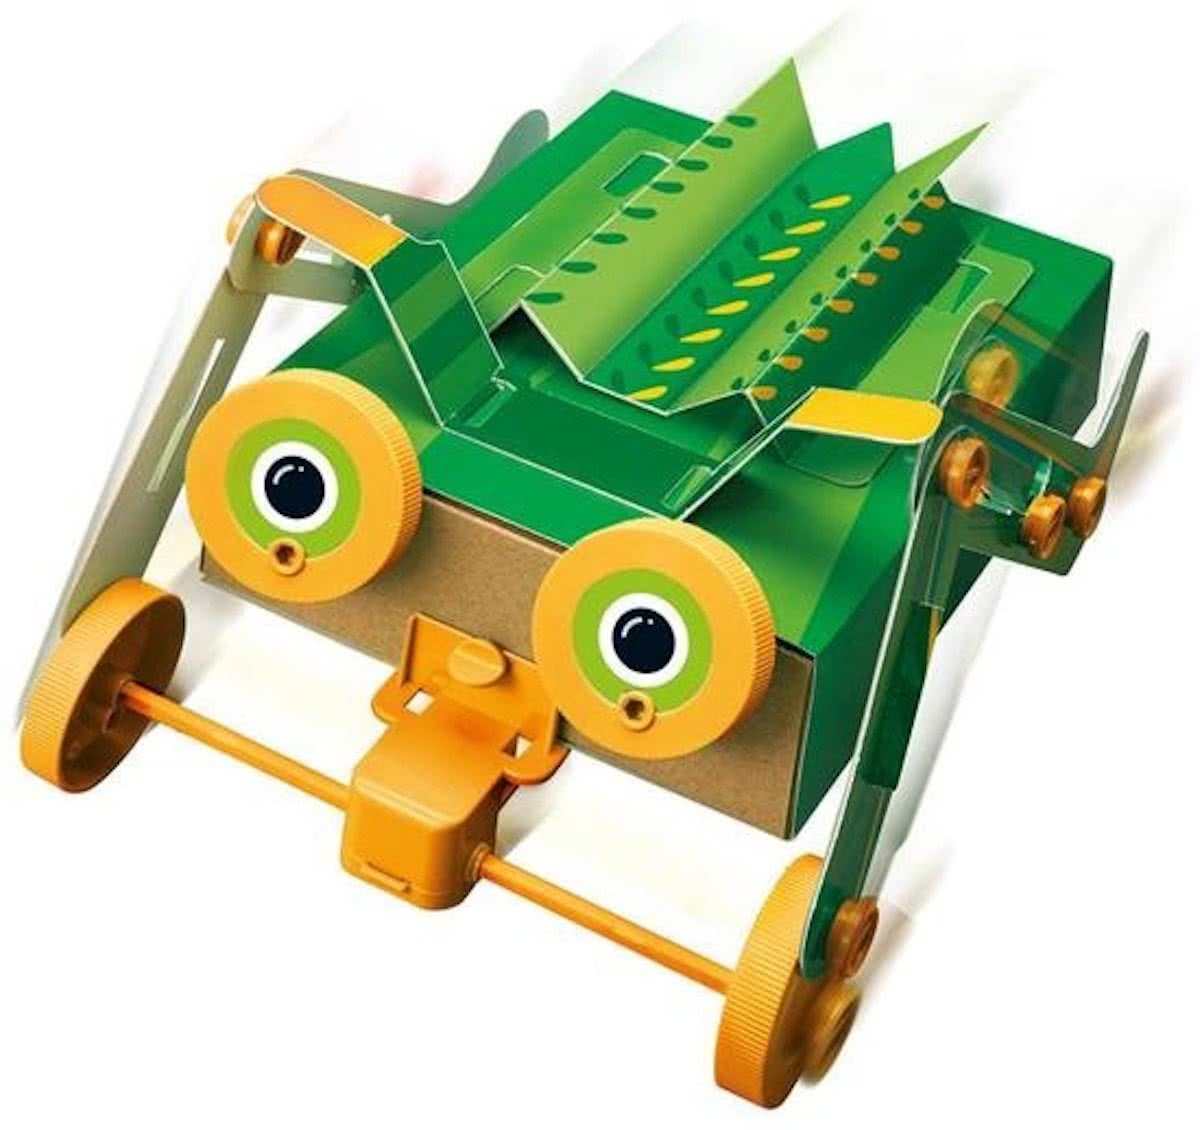 4m Kidzlabs: Green Science Insect Bouwpakket